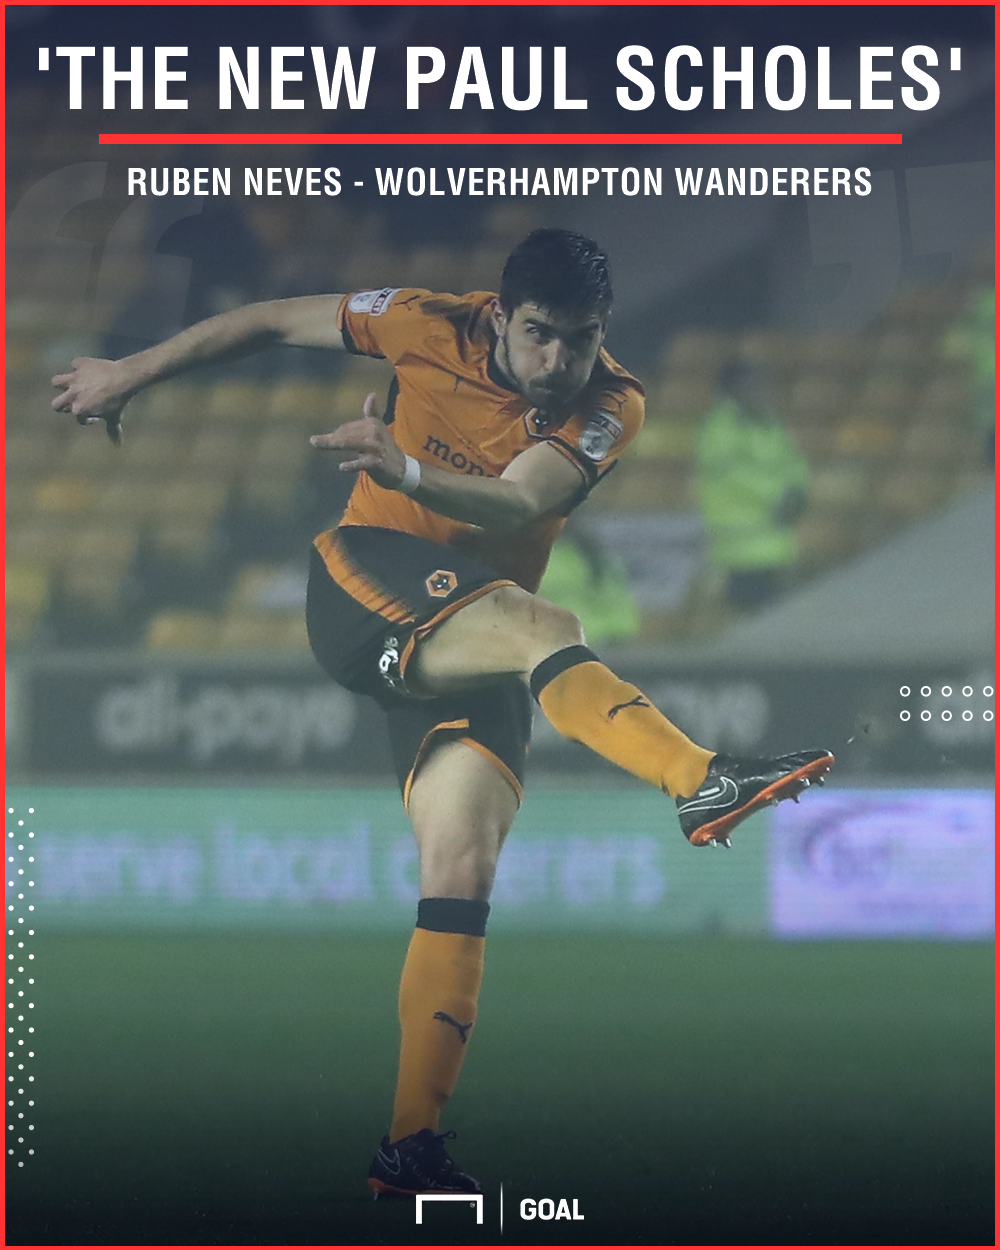 Ruben Neves new Paul Scholes